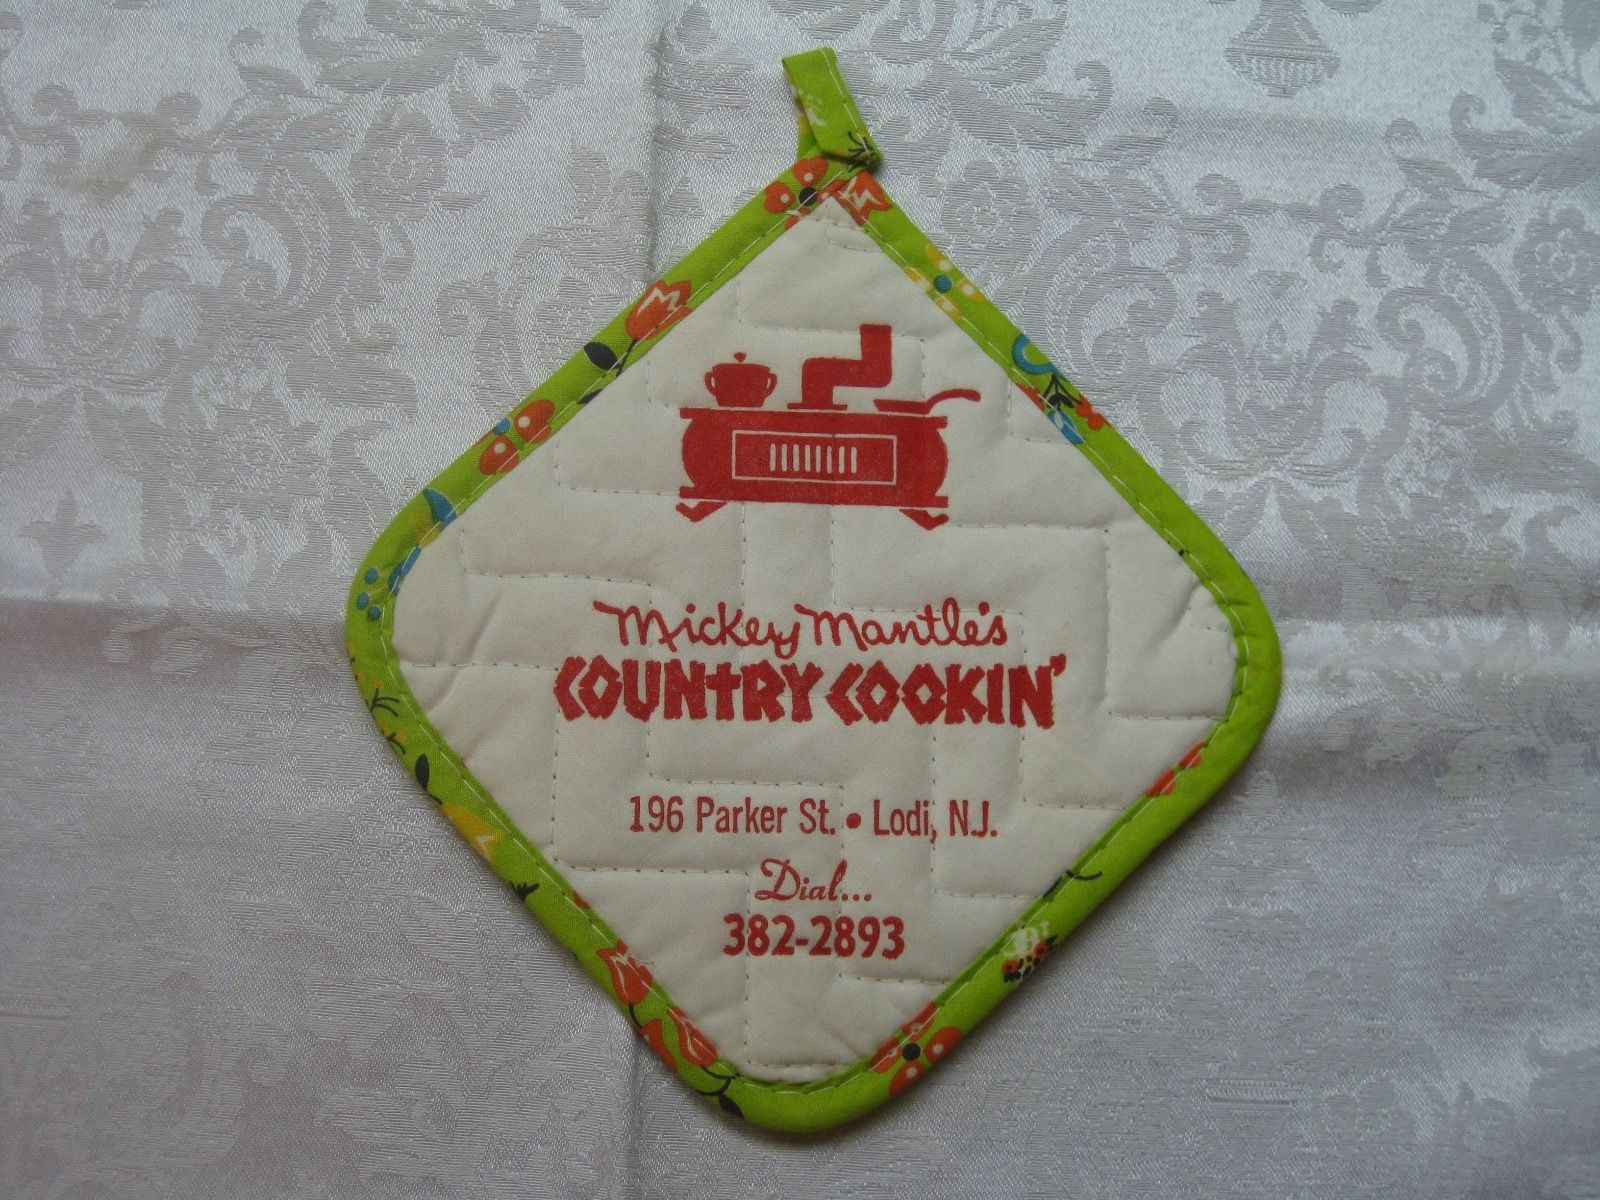 1969 country cookin restaurant